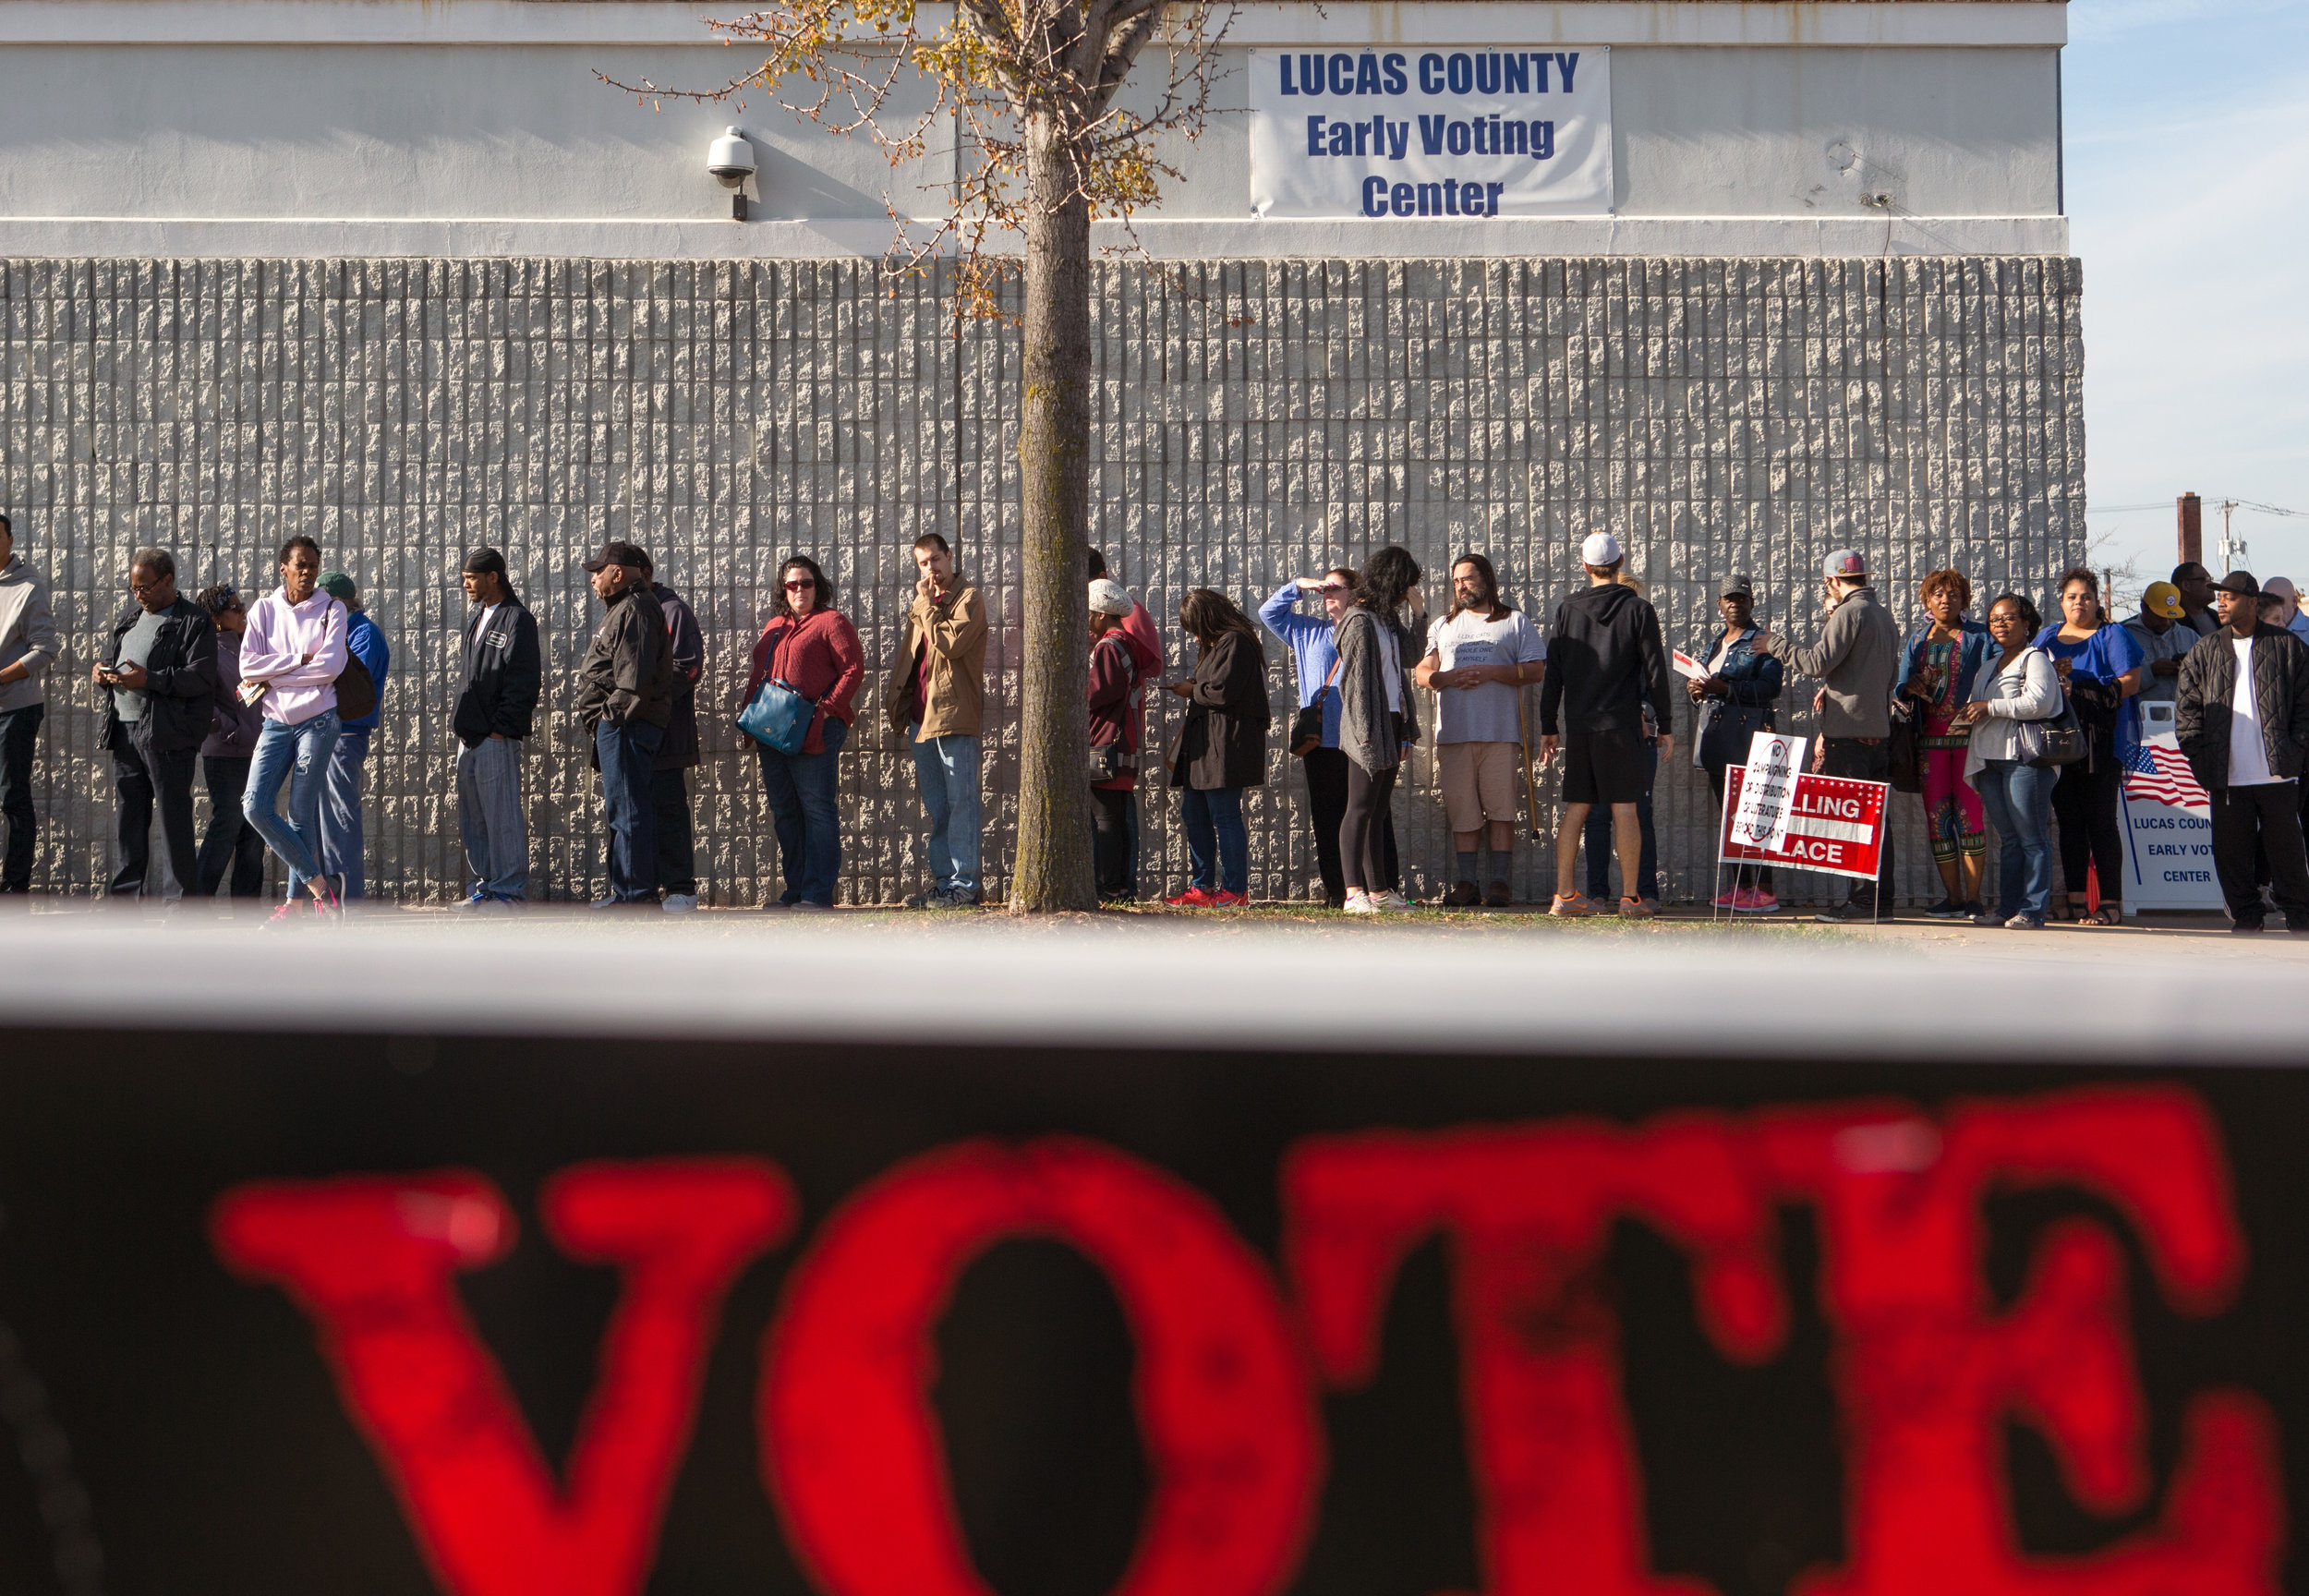 Early voters wait in a line that wraps around the outside of the Lucas County Early Voting Center on Monroe St. in Toledo to cast their vote in the upcoming election on Saturday, Nov. 5, 2016.